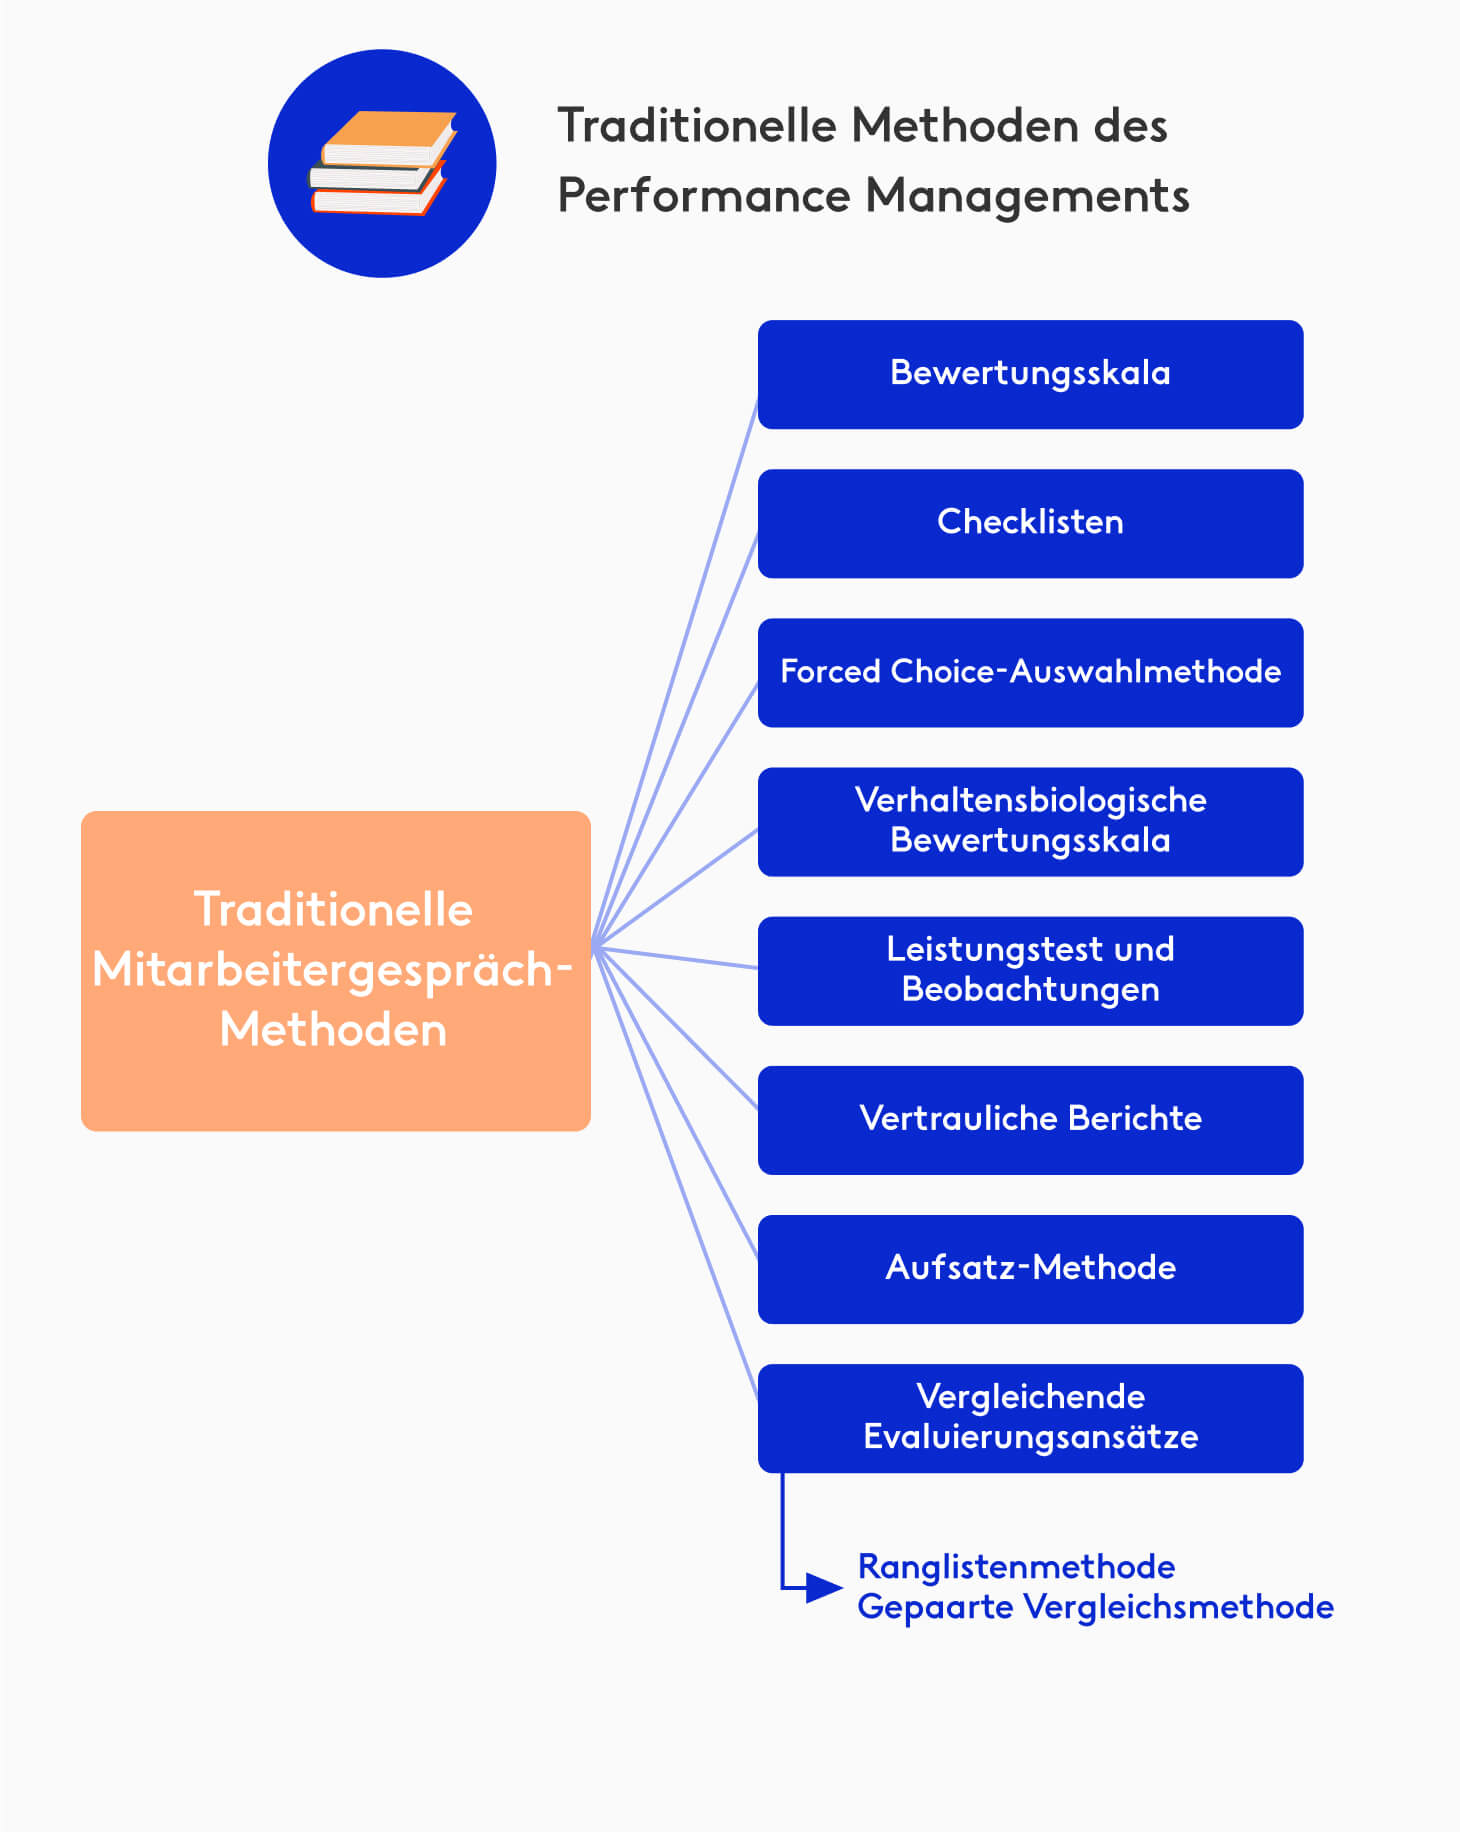 Traditionelle Methoden Performance Management